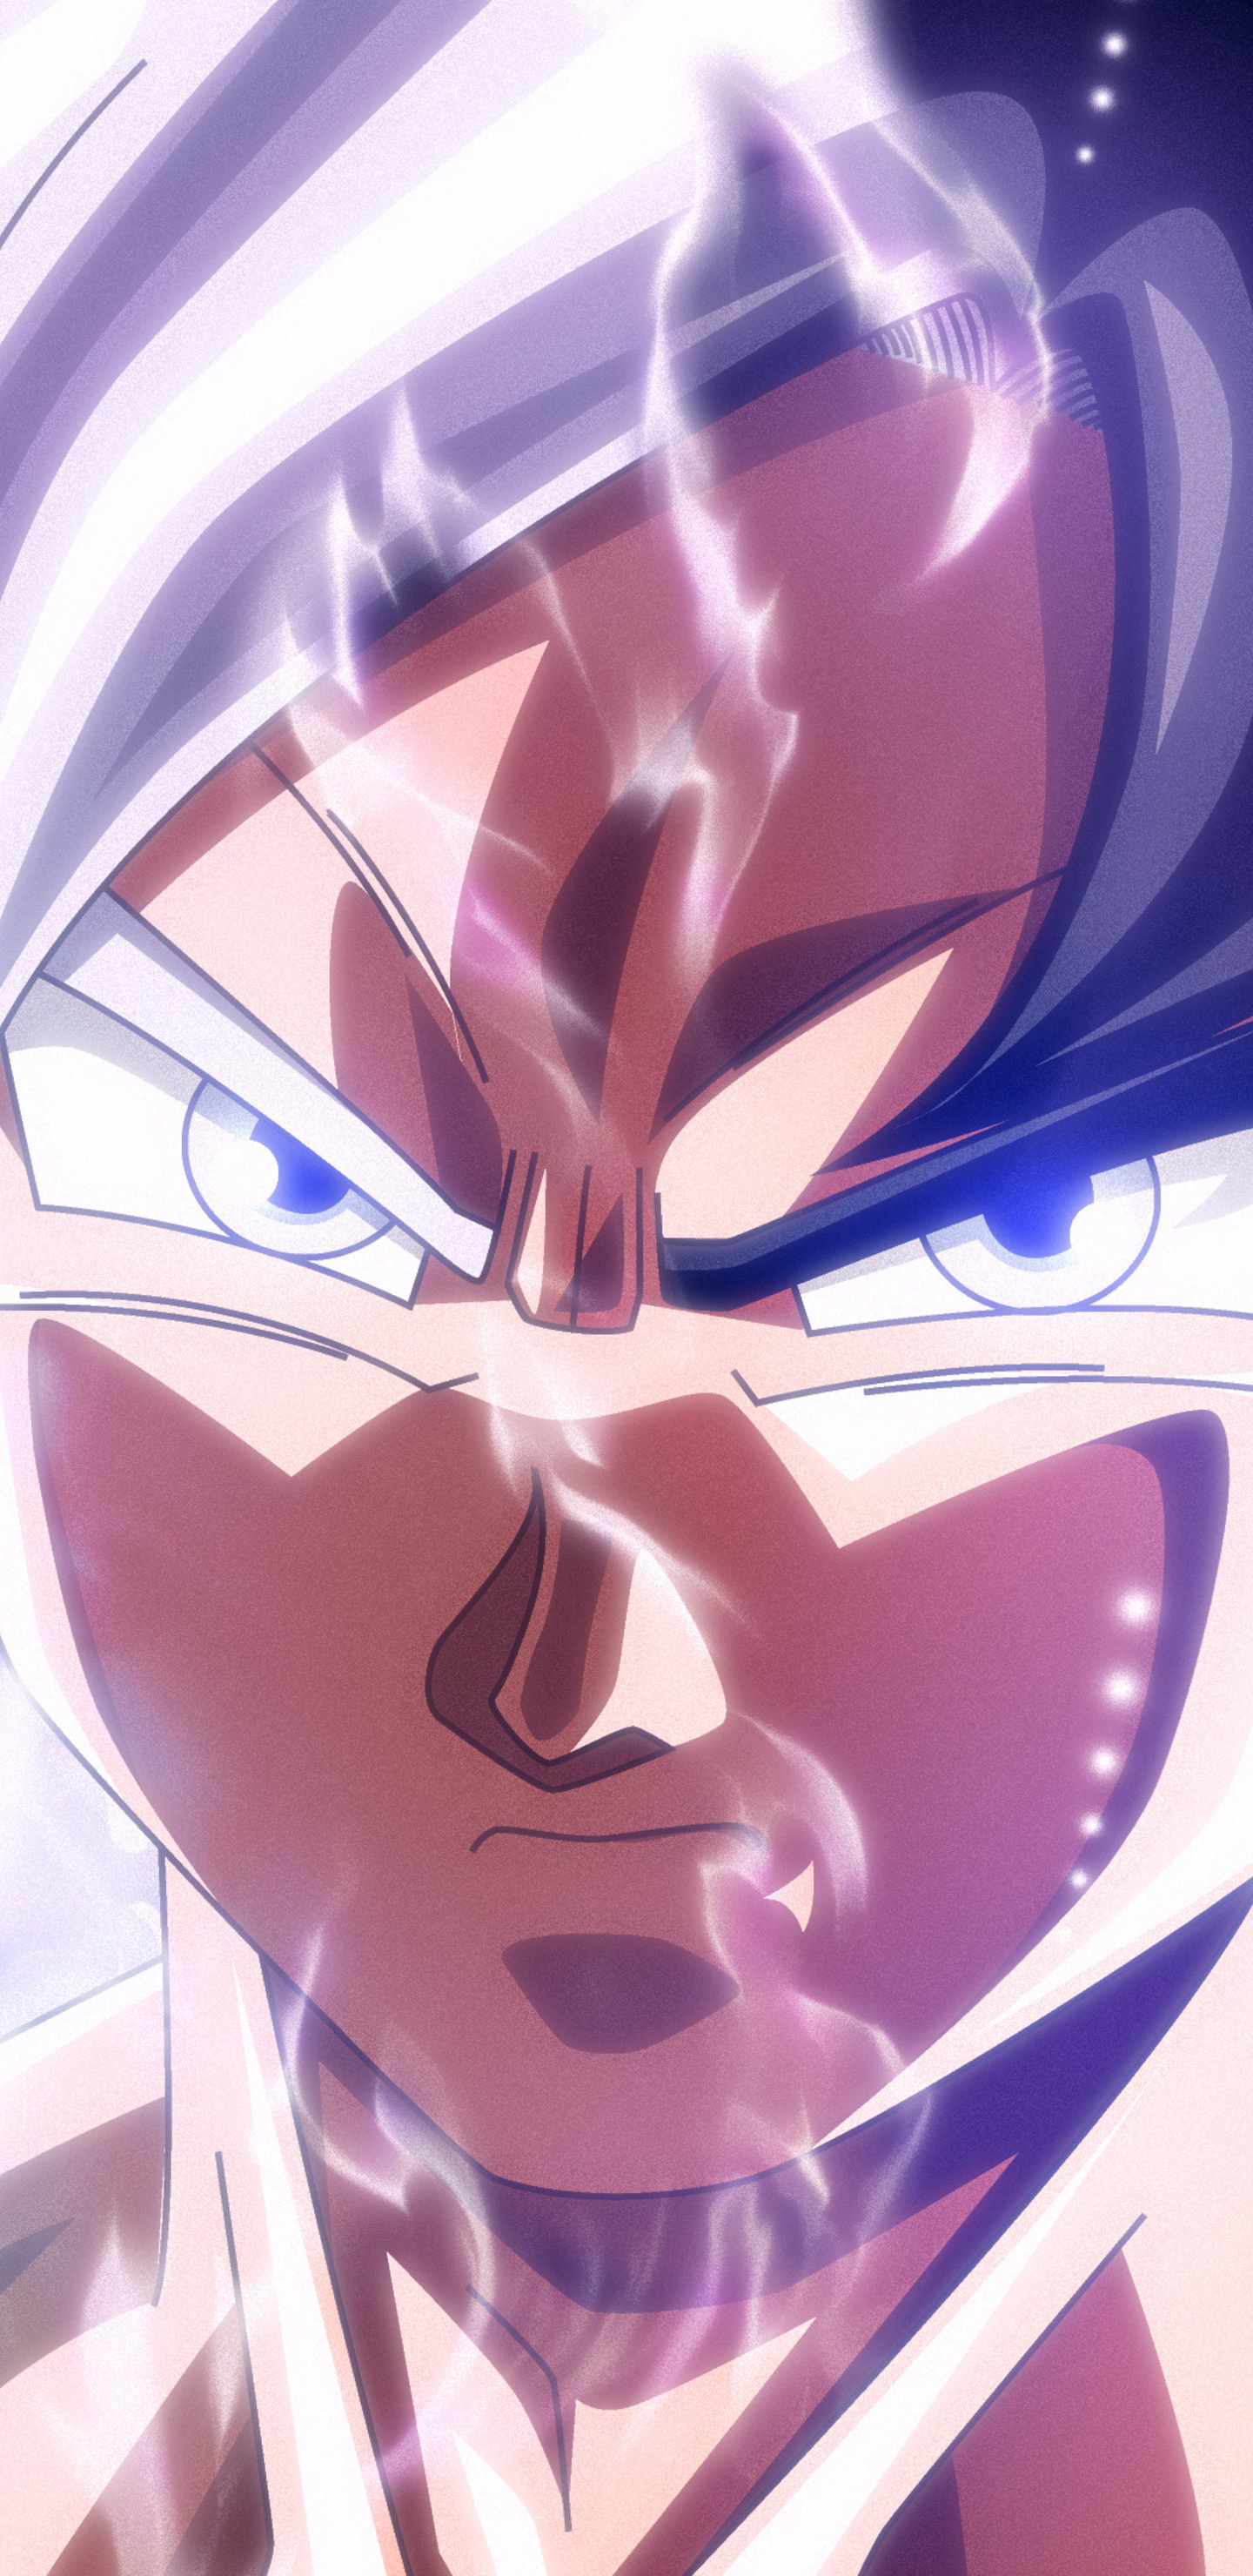 1440x2960 Son Goku Mastered Ultra Instinct Samsung Galaxy Note 9 8 S9 S8 S8 Qhd Hd 4k Wallpapers Images Backgrounds Photos And Pictures